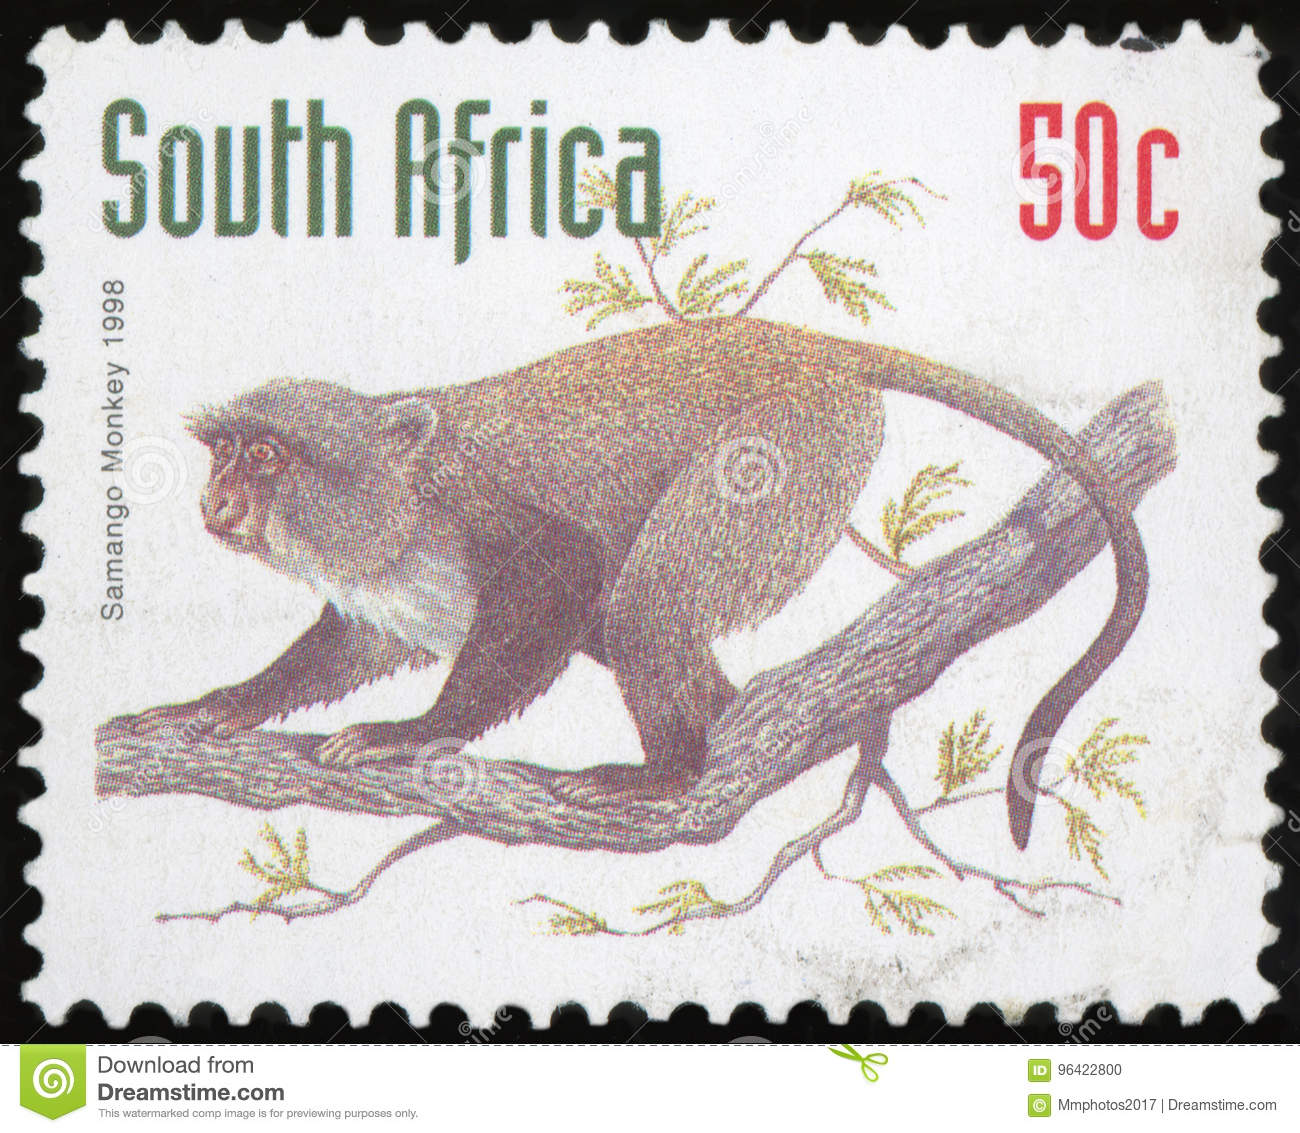 Postage stamp - South Africa